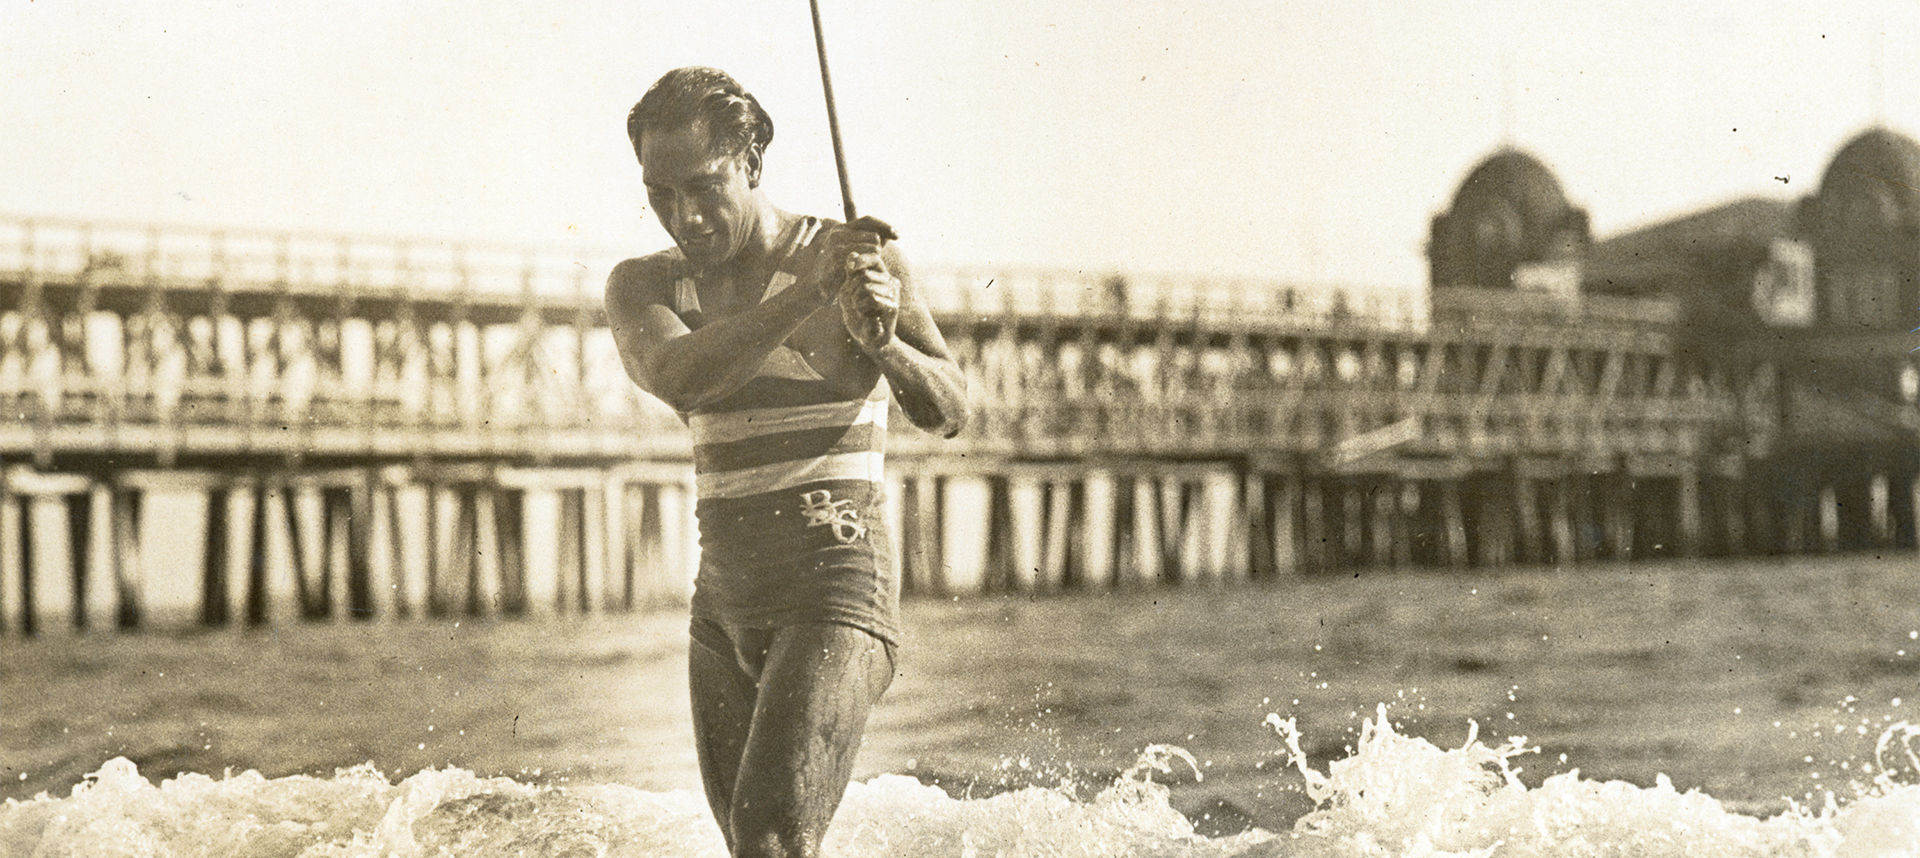 Duke exiting the water with stick in his hand in front of pier